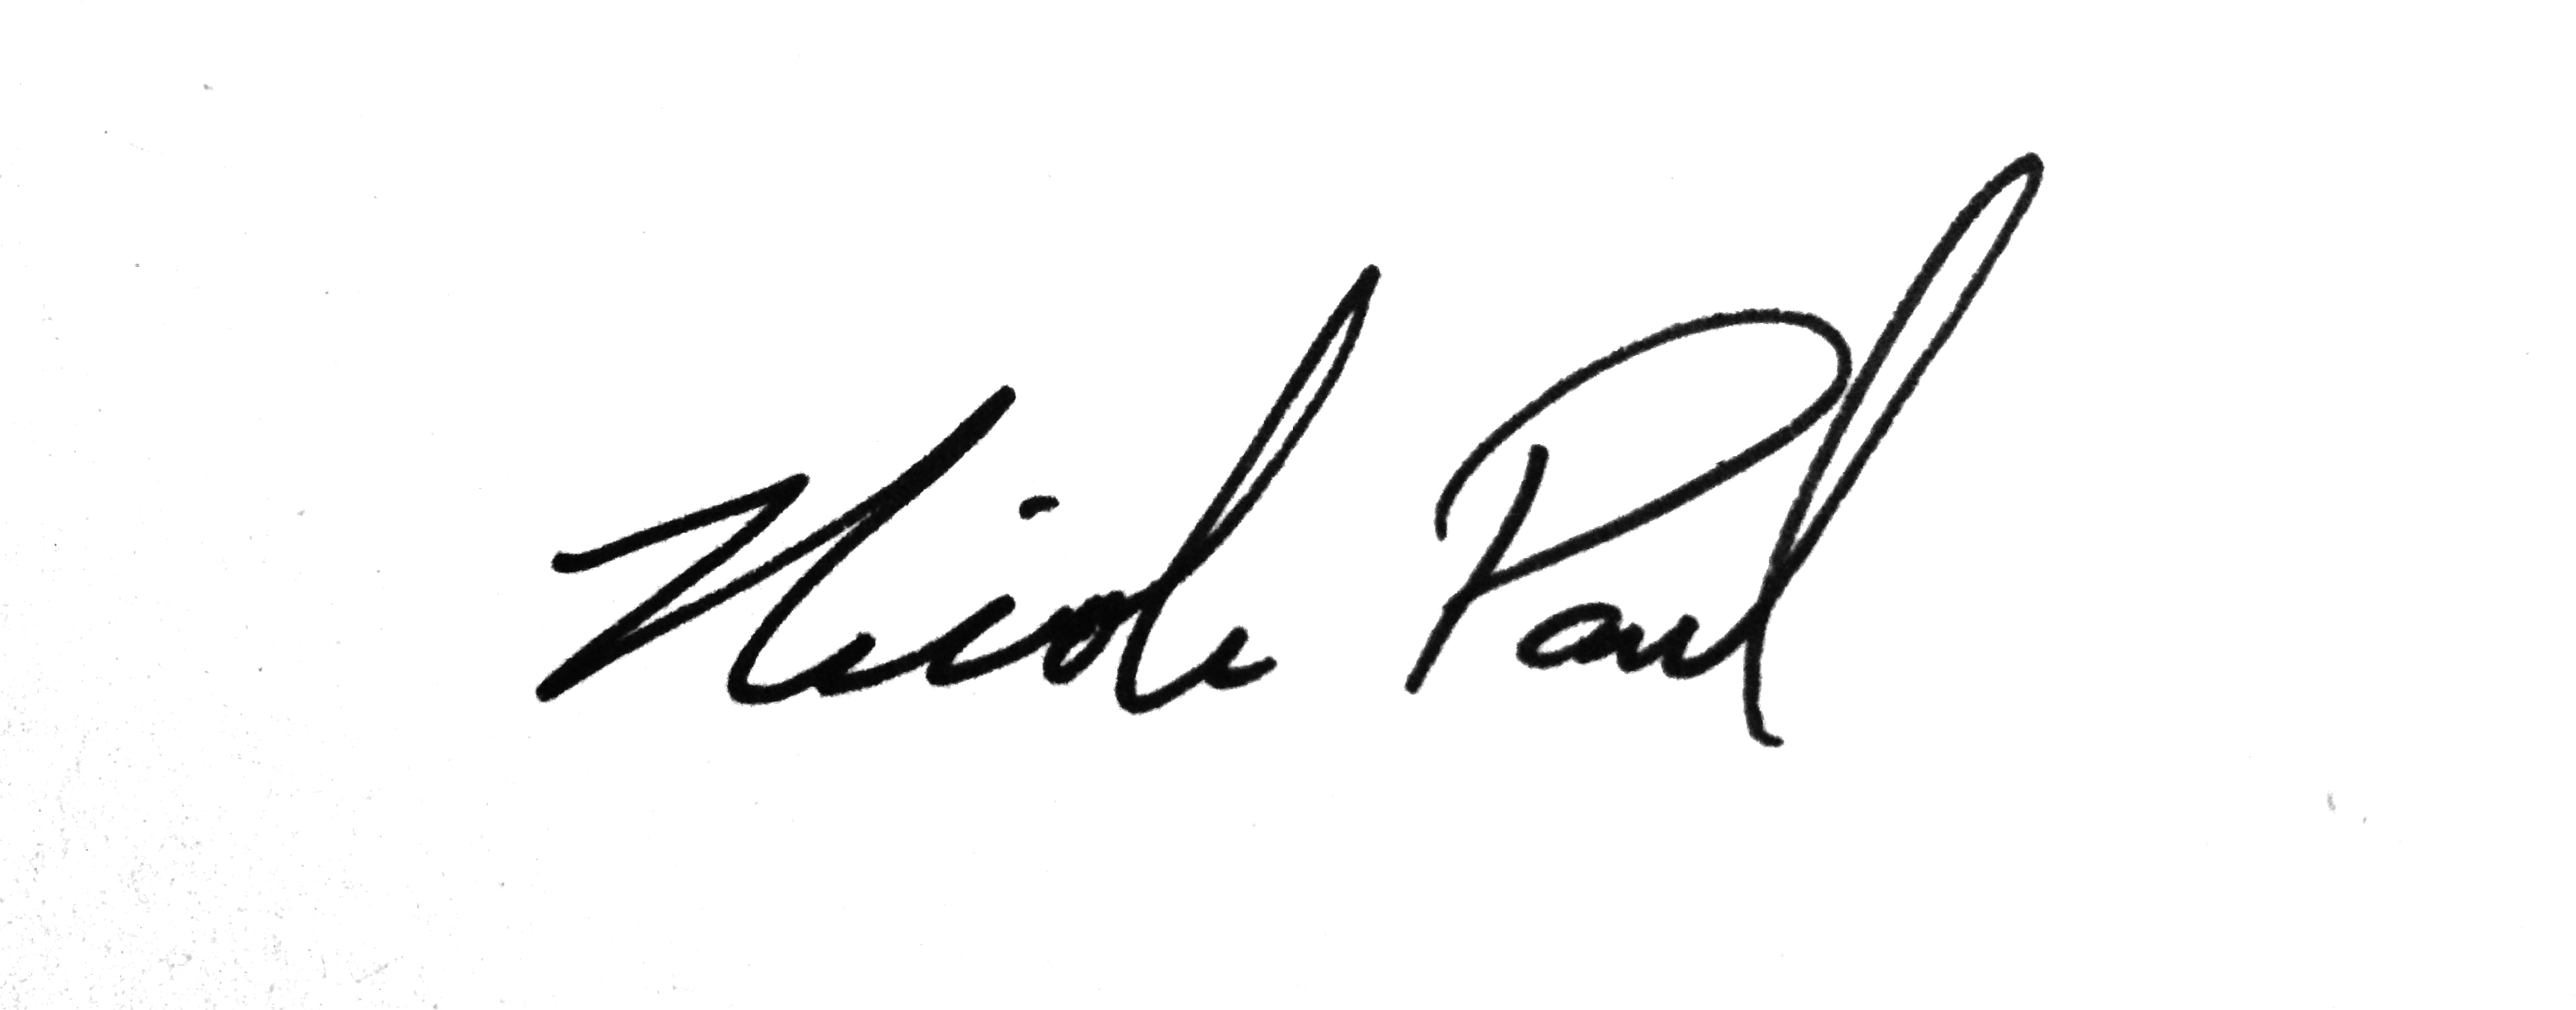 Nicole Paul. Signature